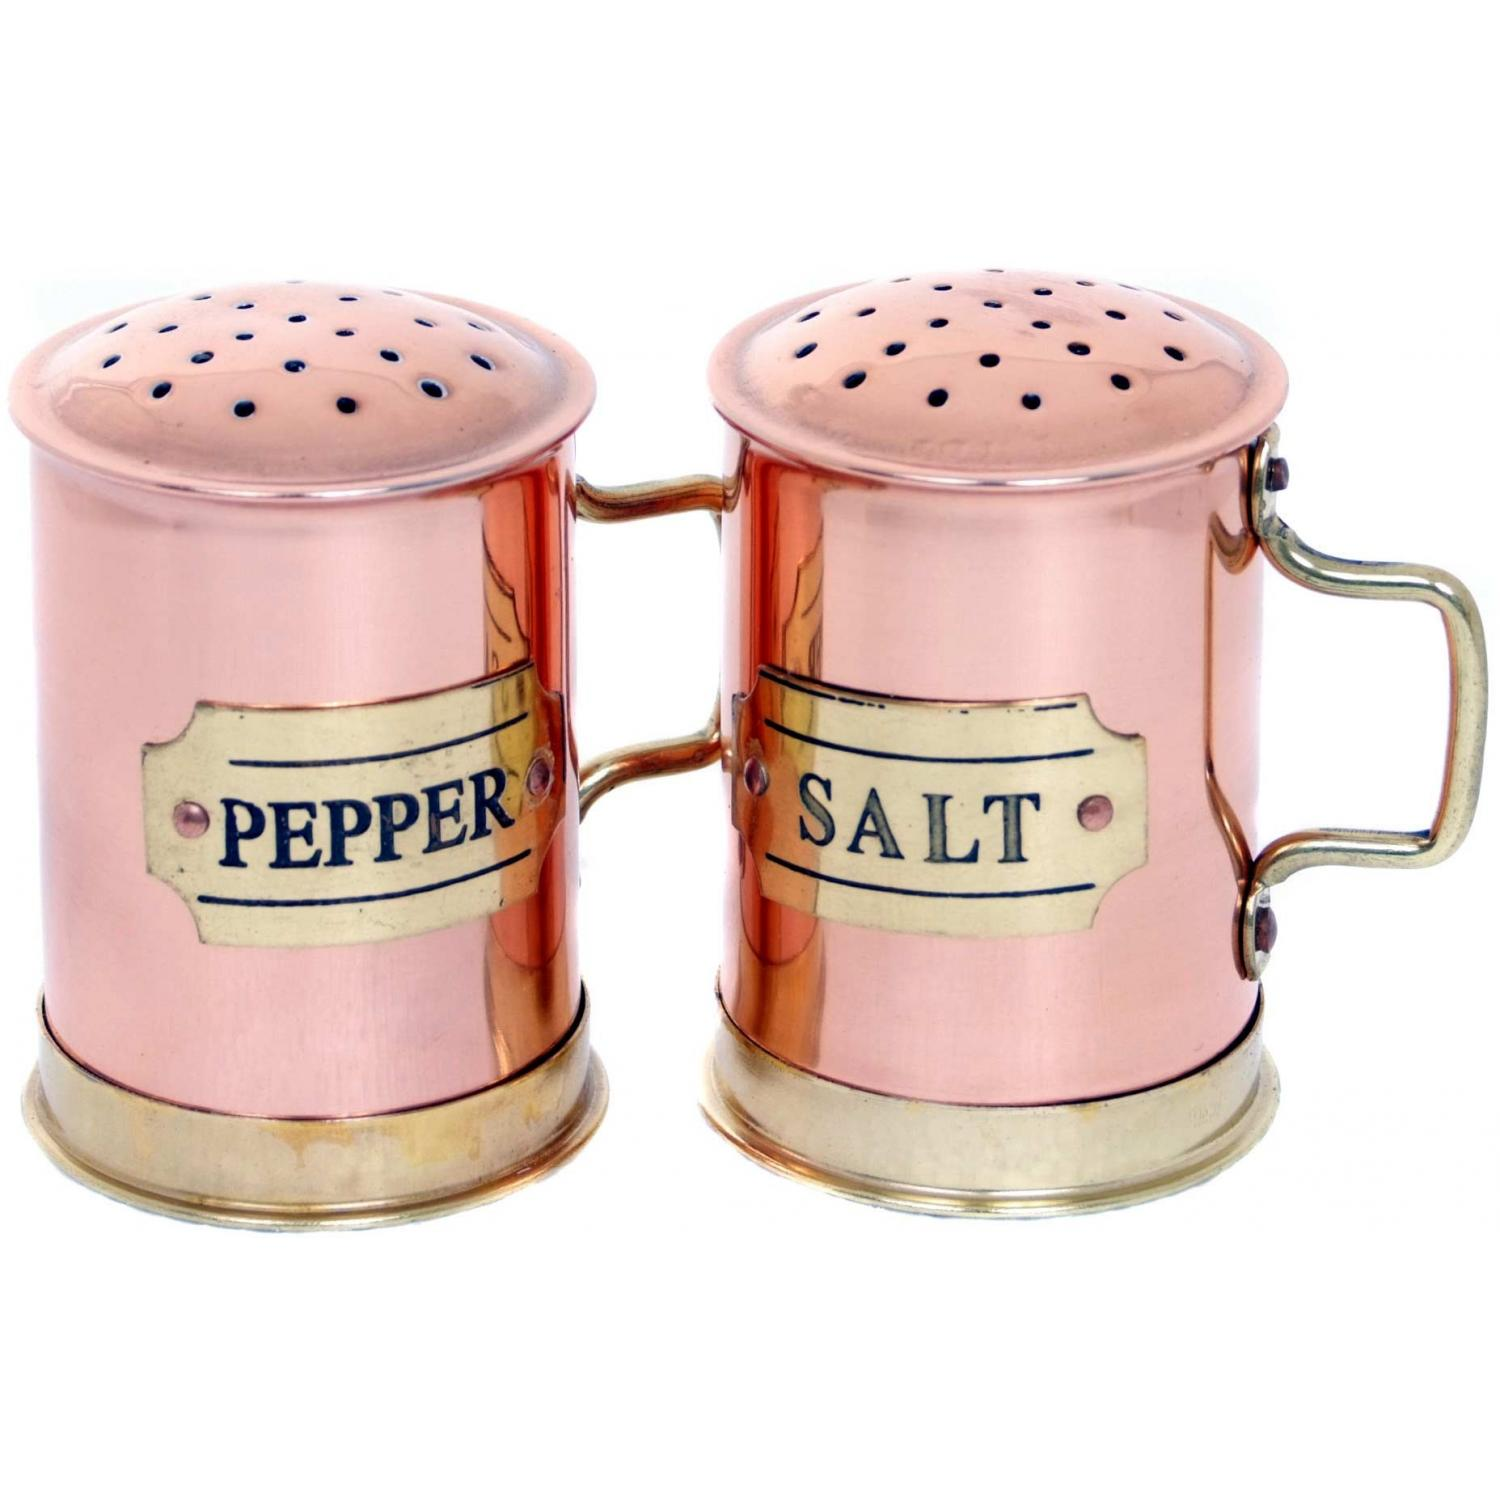 Old Dutch Copper Salt And Pepper Shakers 2.75 Inch at Sears.com